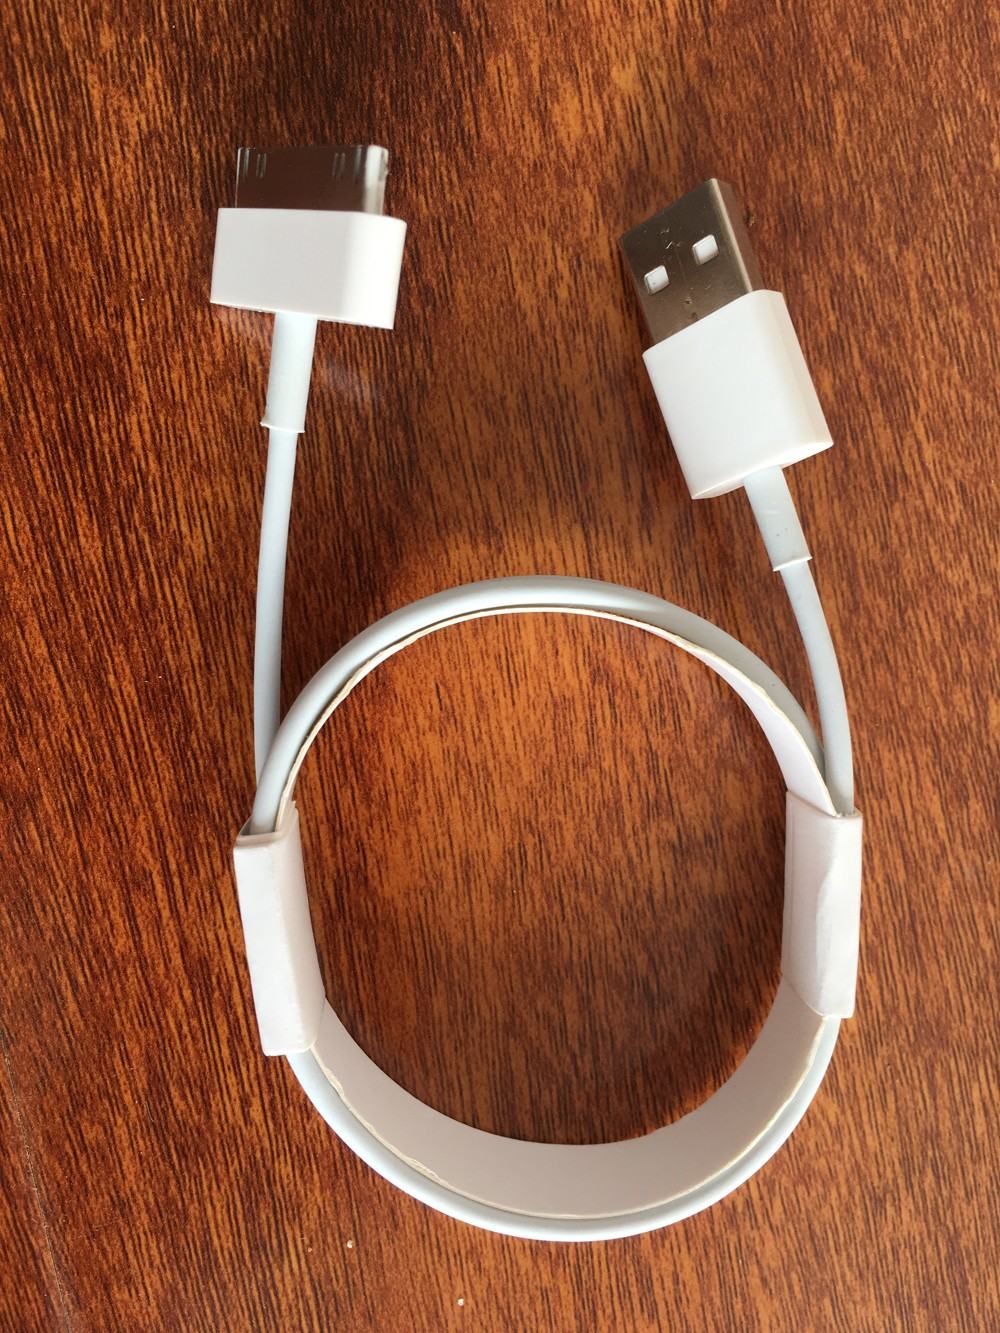 iphone 4s usb cable.jpg